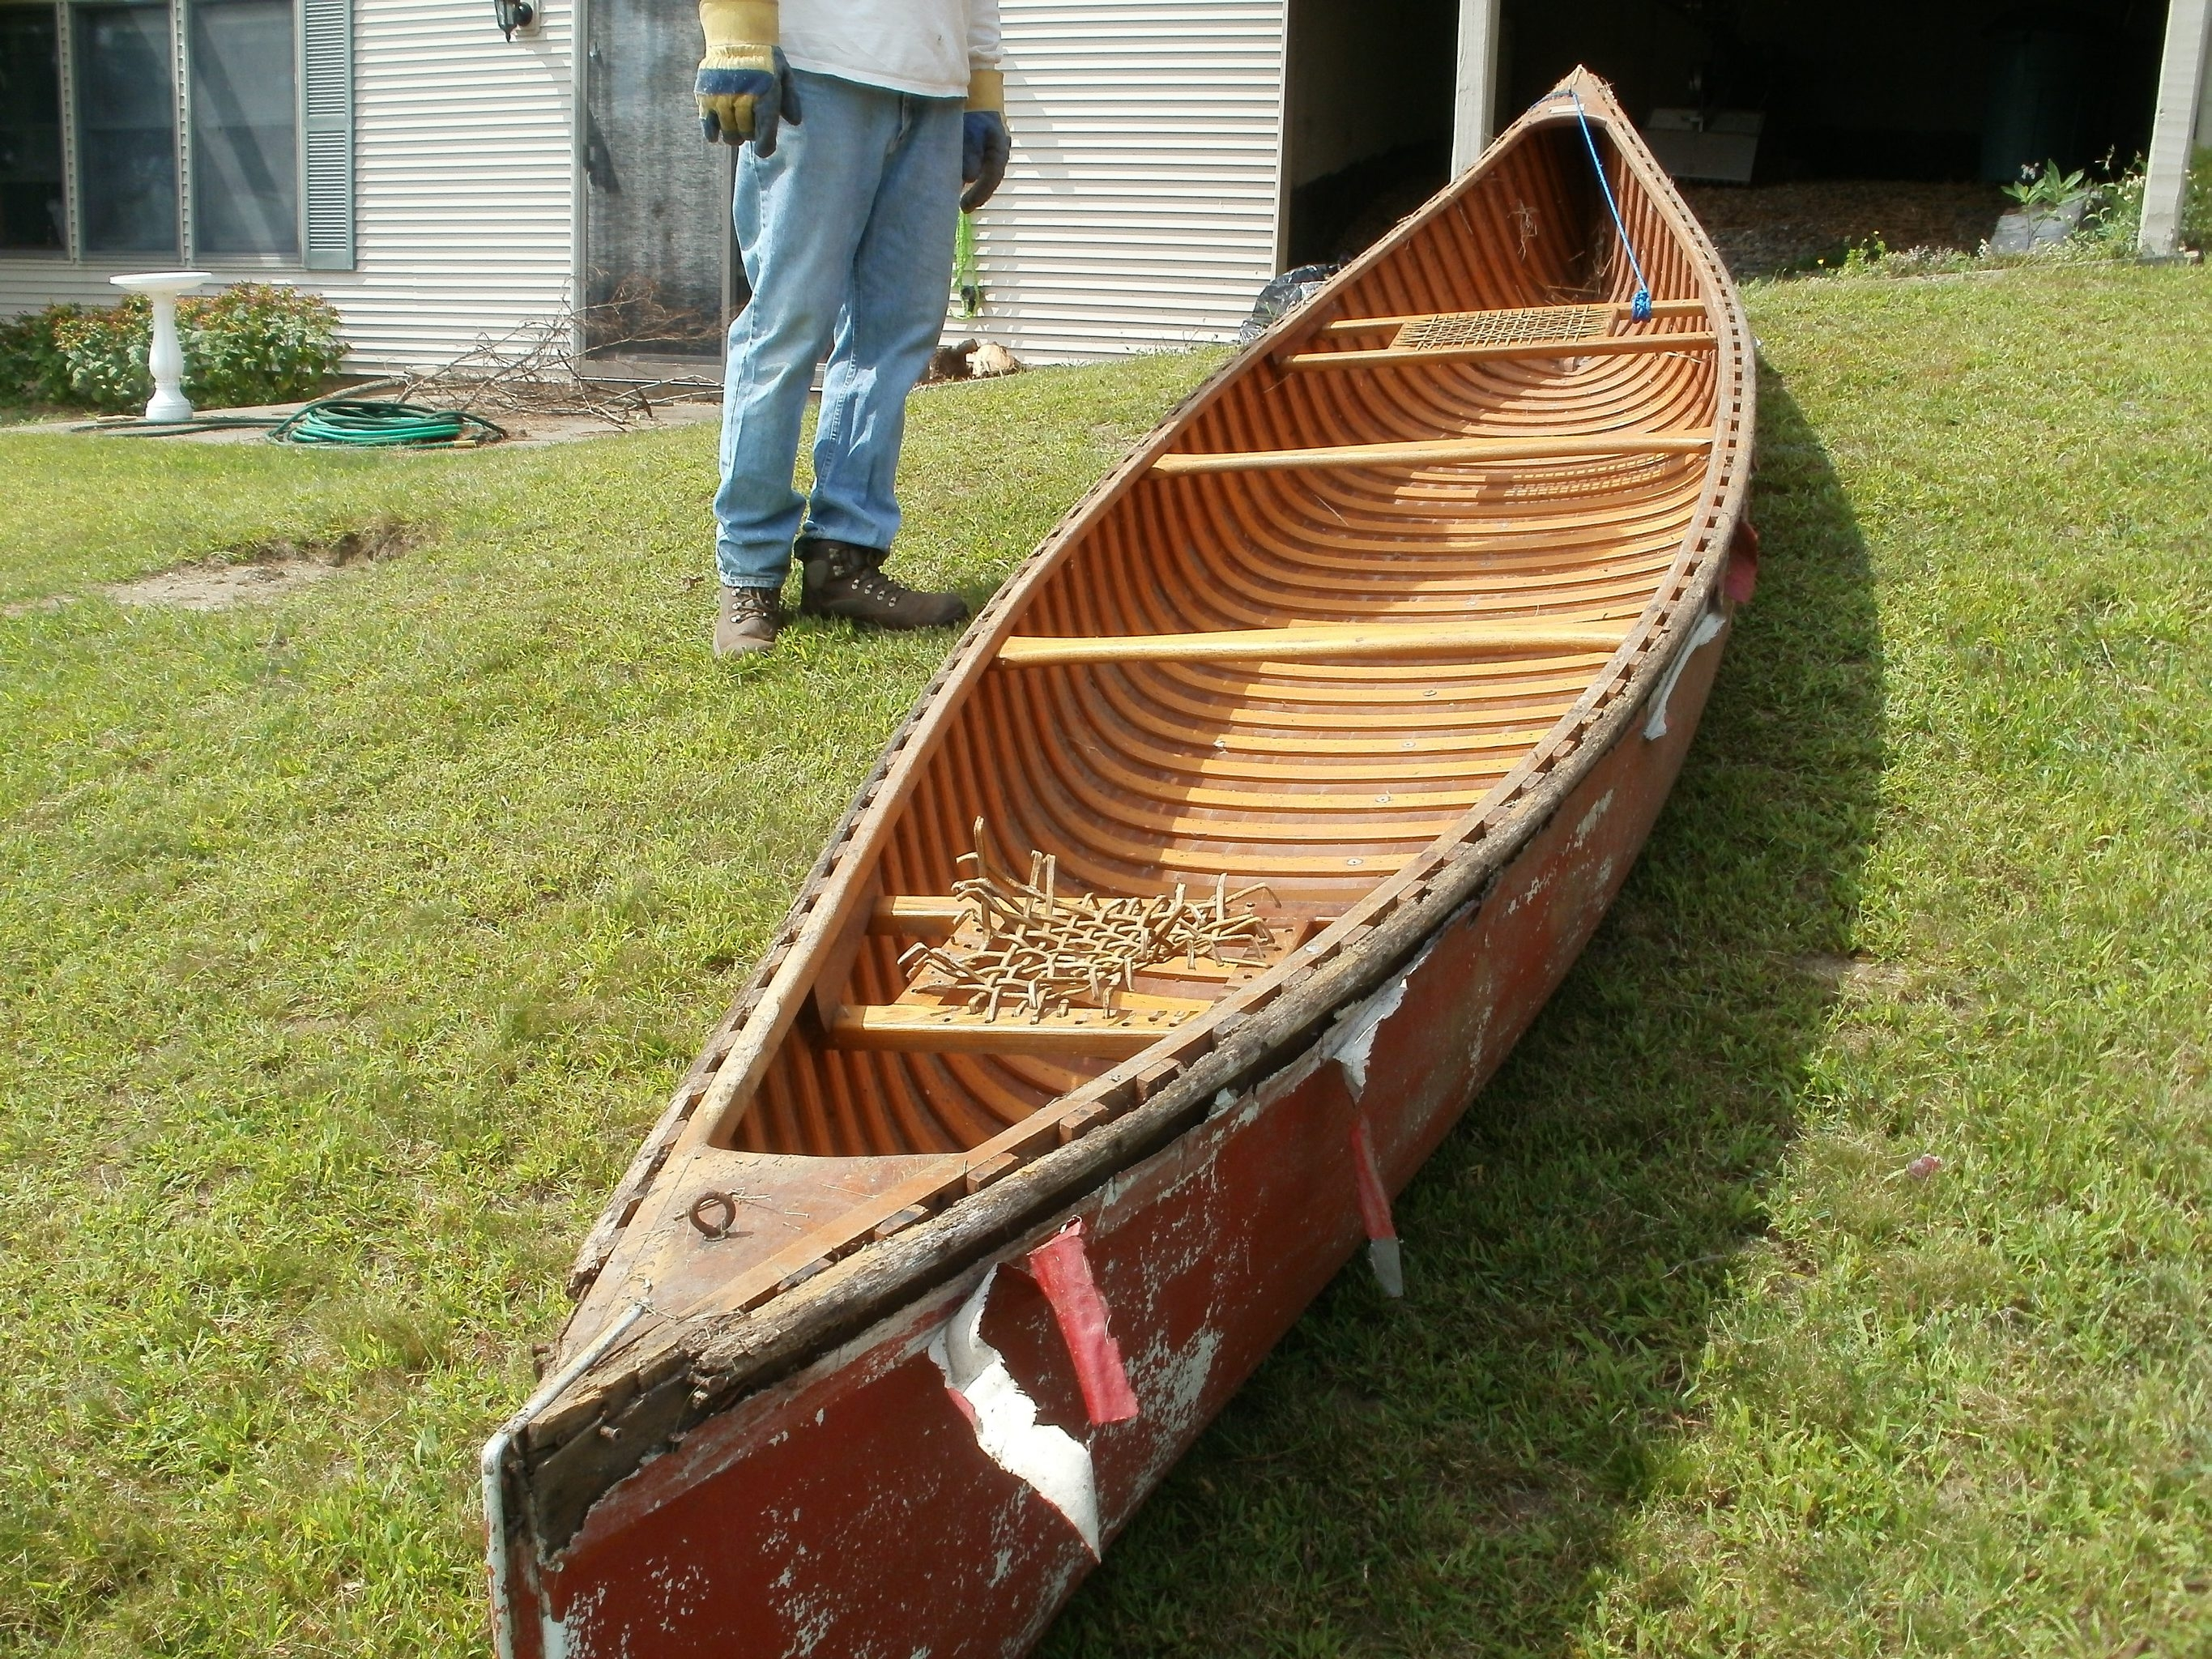 The vintage canoe that once belonged to the late John Zale is being repaired and restored and will be donated to the Boy Scouts of the Greater Niagara Frontier Council. The council's leaders said they will display the canoe as part of the organization's local history.